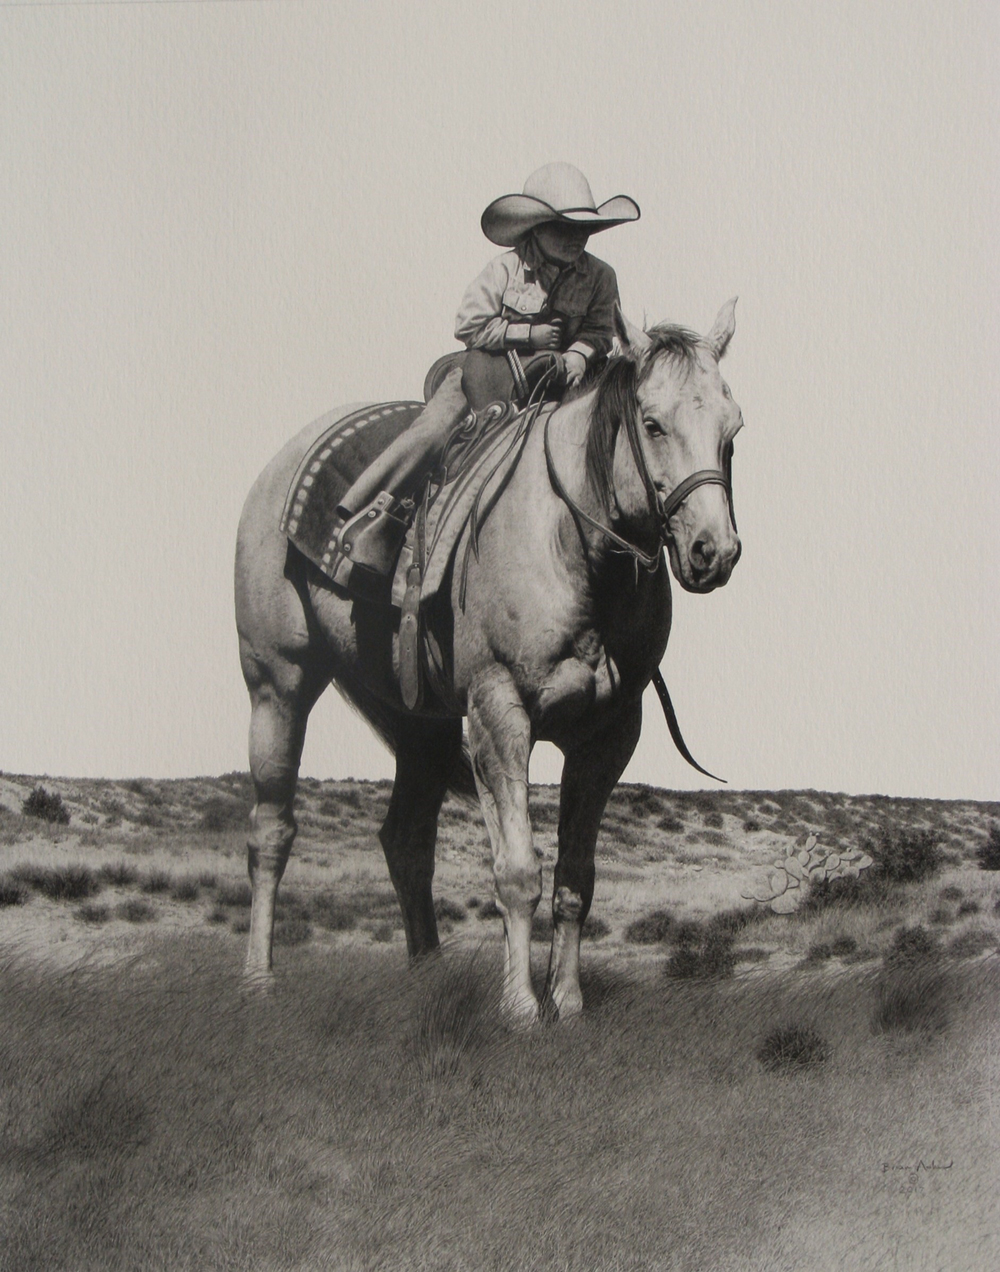 Littlest Cowboy by Brian Asher